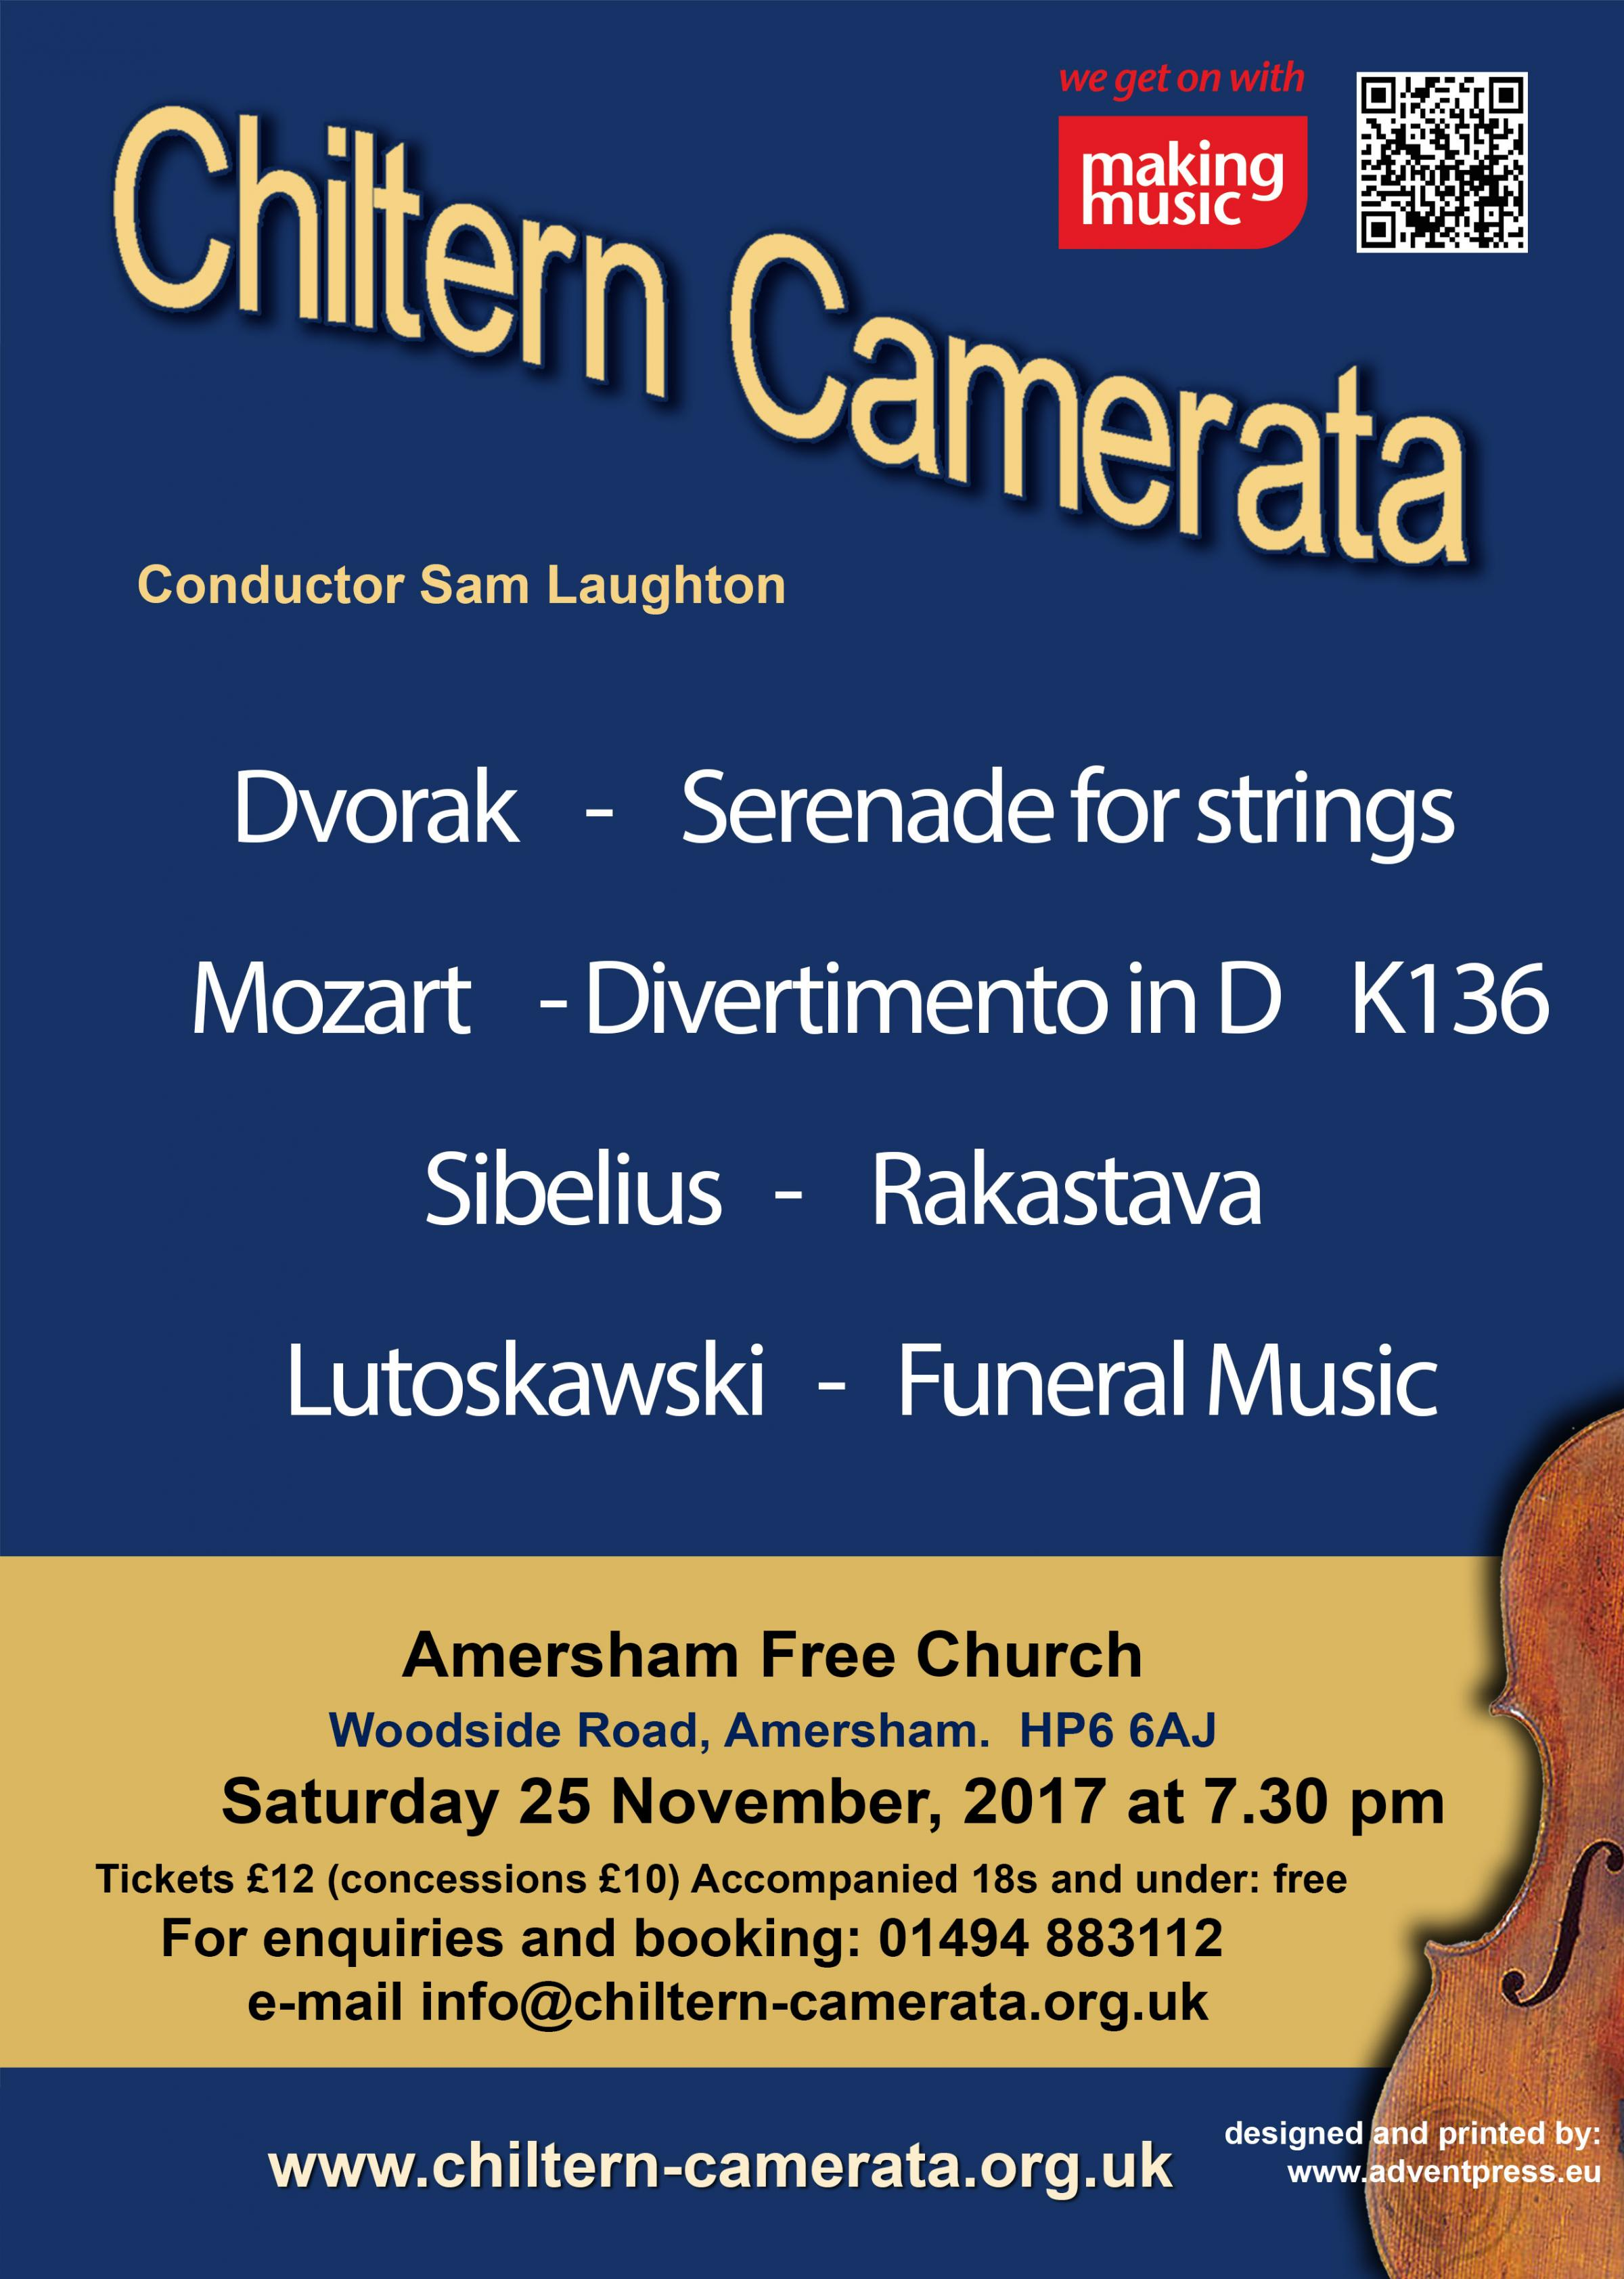 THE CHILTERN CAMERATA'S NEW SEASON OF CONCERTS!